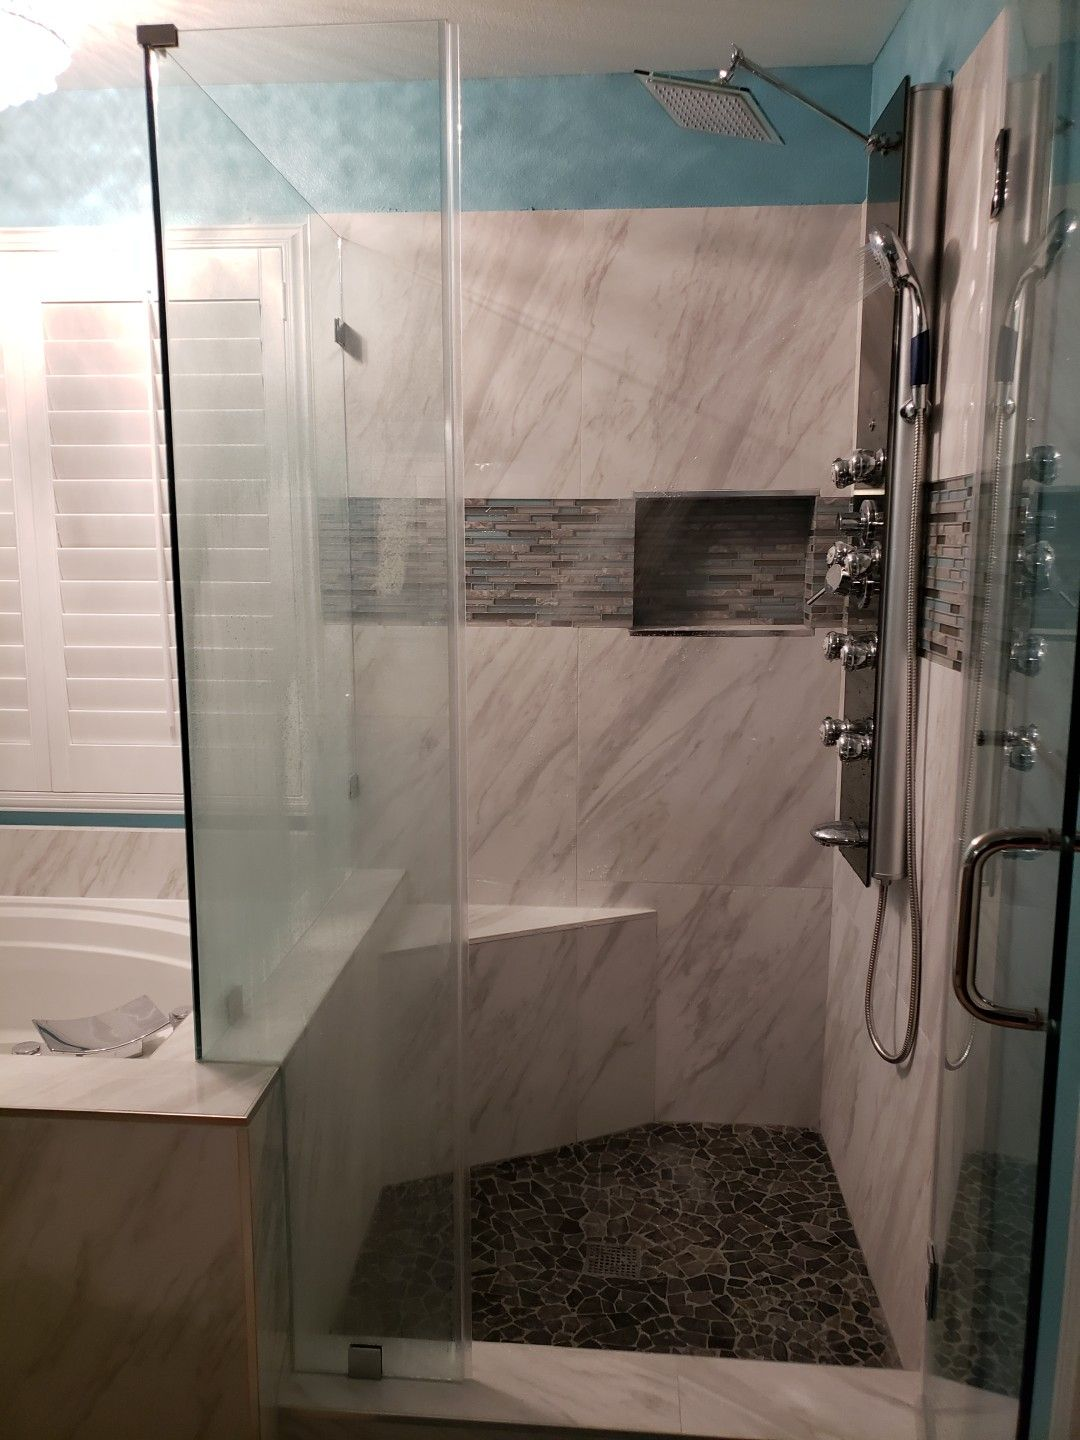 New Tile In Shower And Around The Tub Gives A Wonderful Look